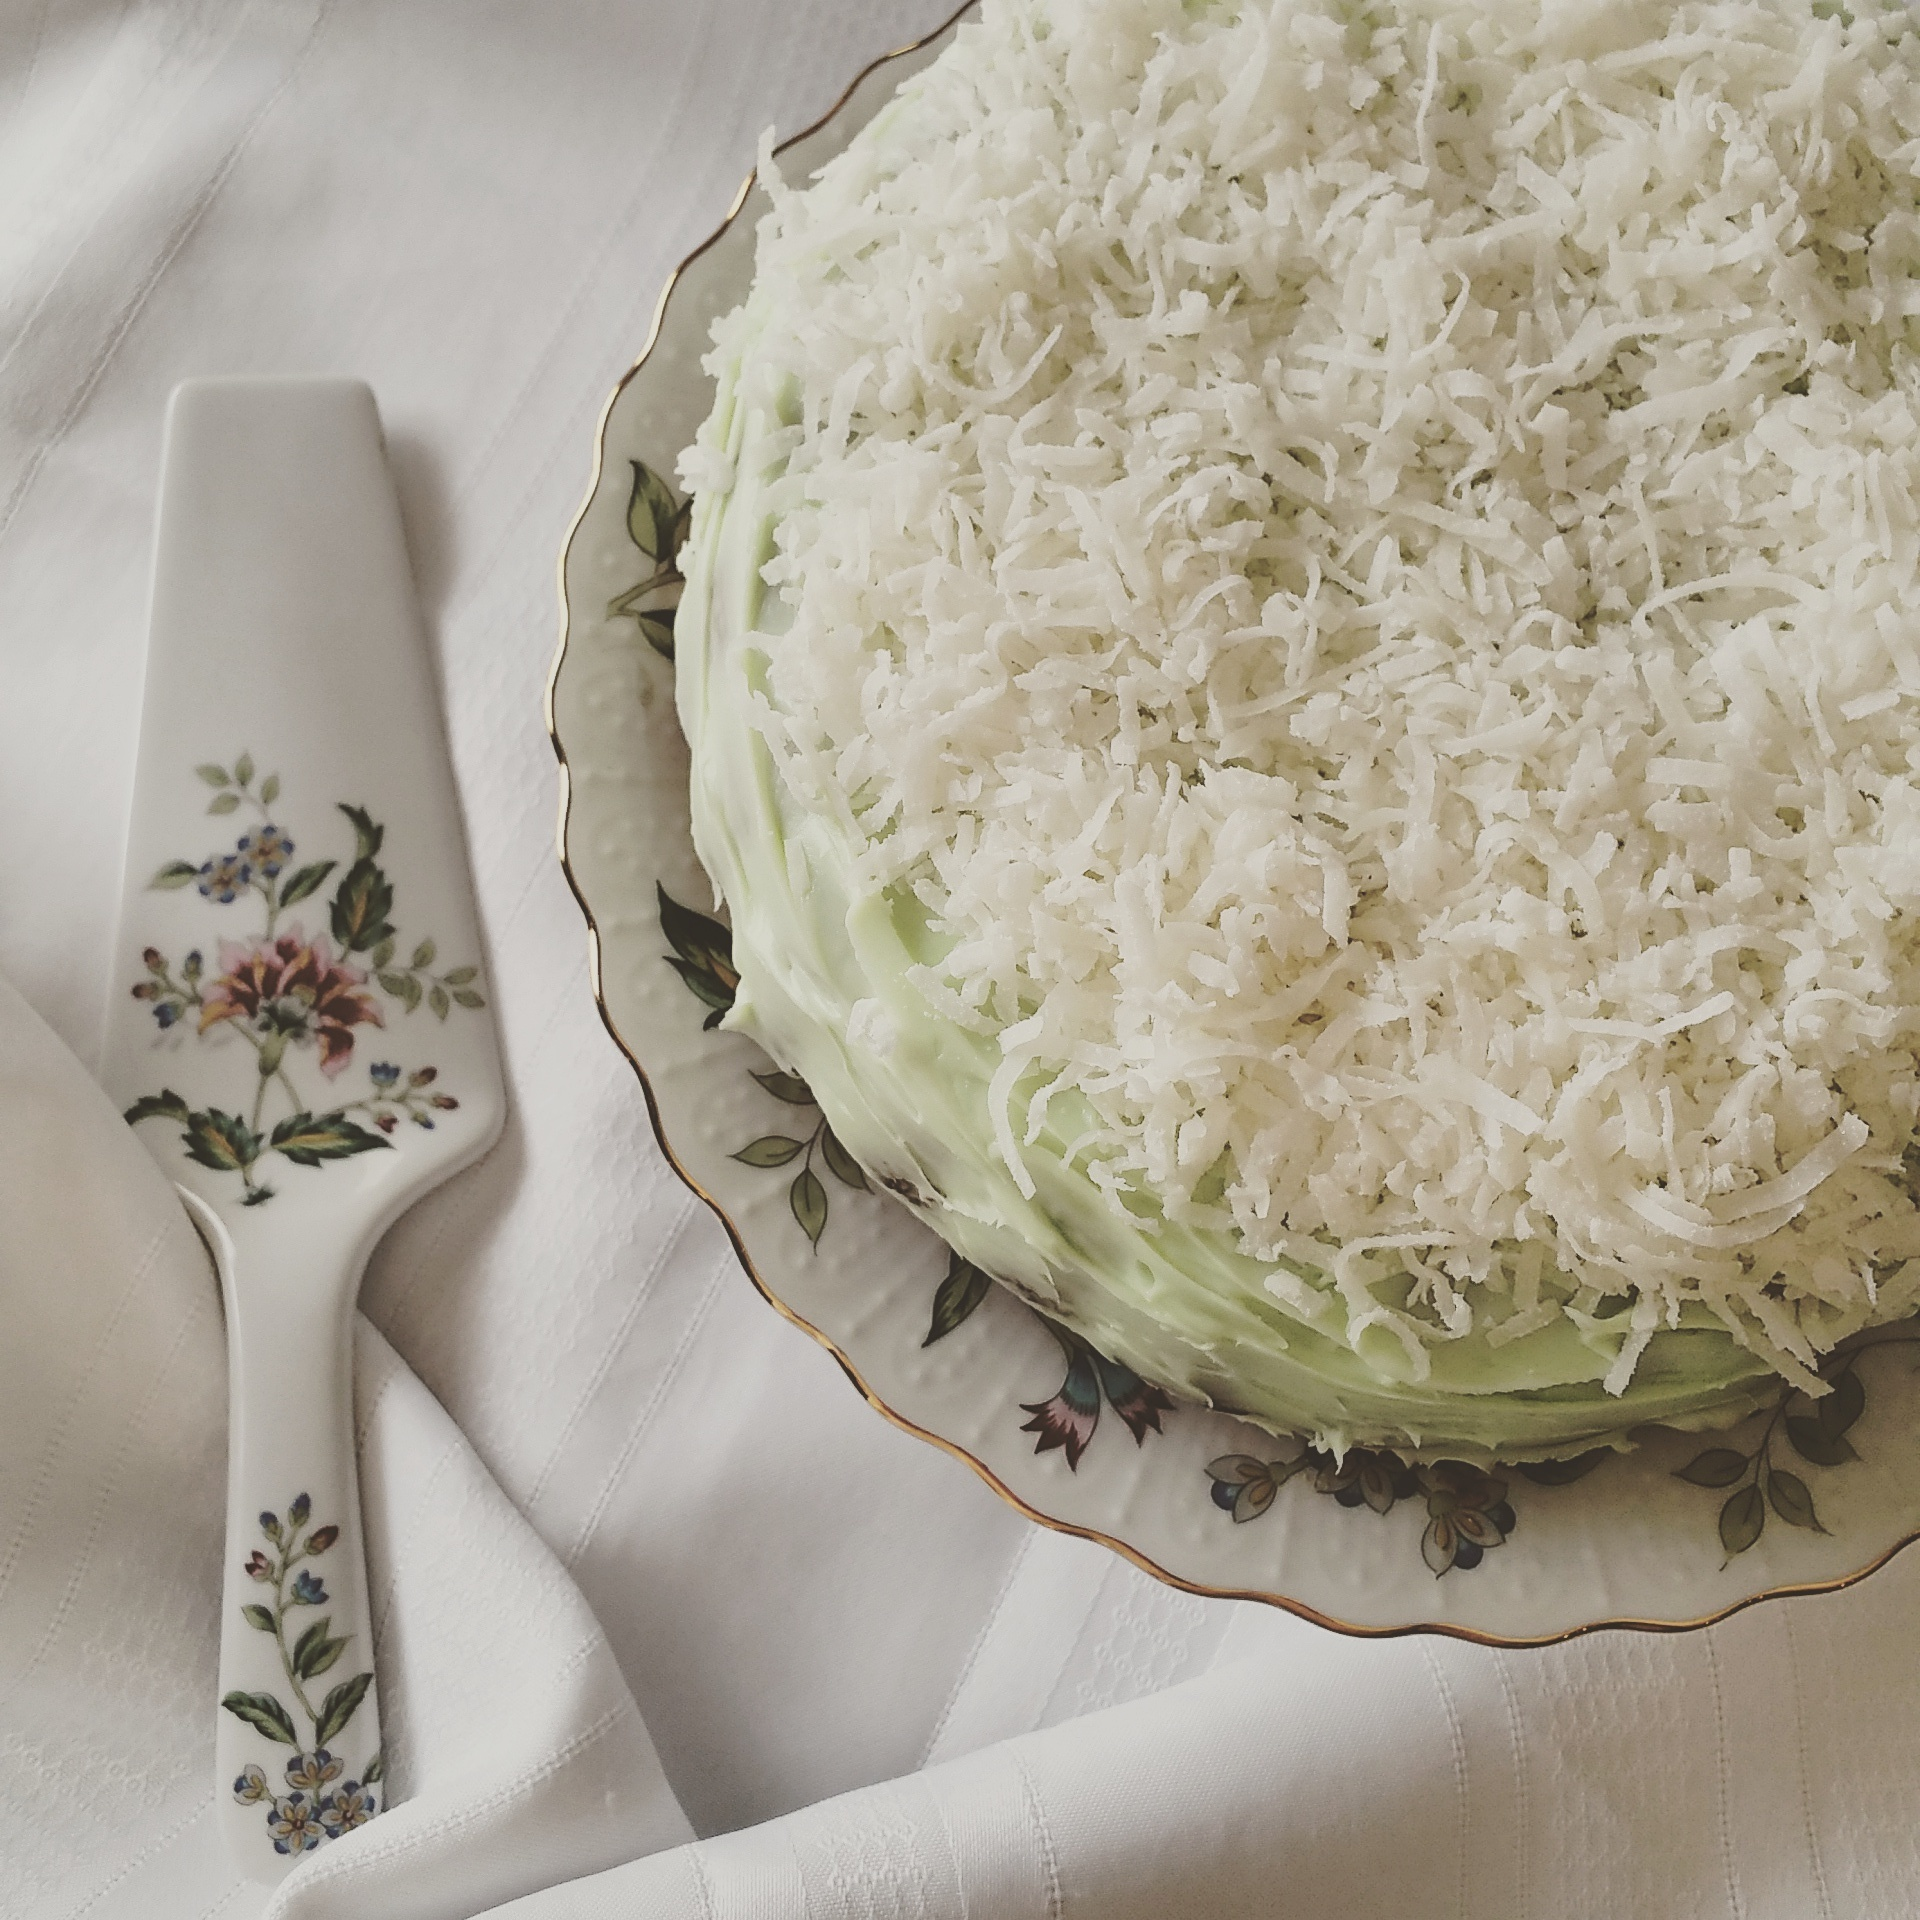 Blue Ribbons & The State Fair | Coconut Cake with Cream Cheese Key Lime Curd Frosting